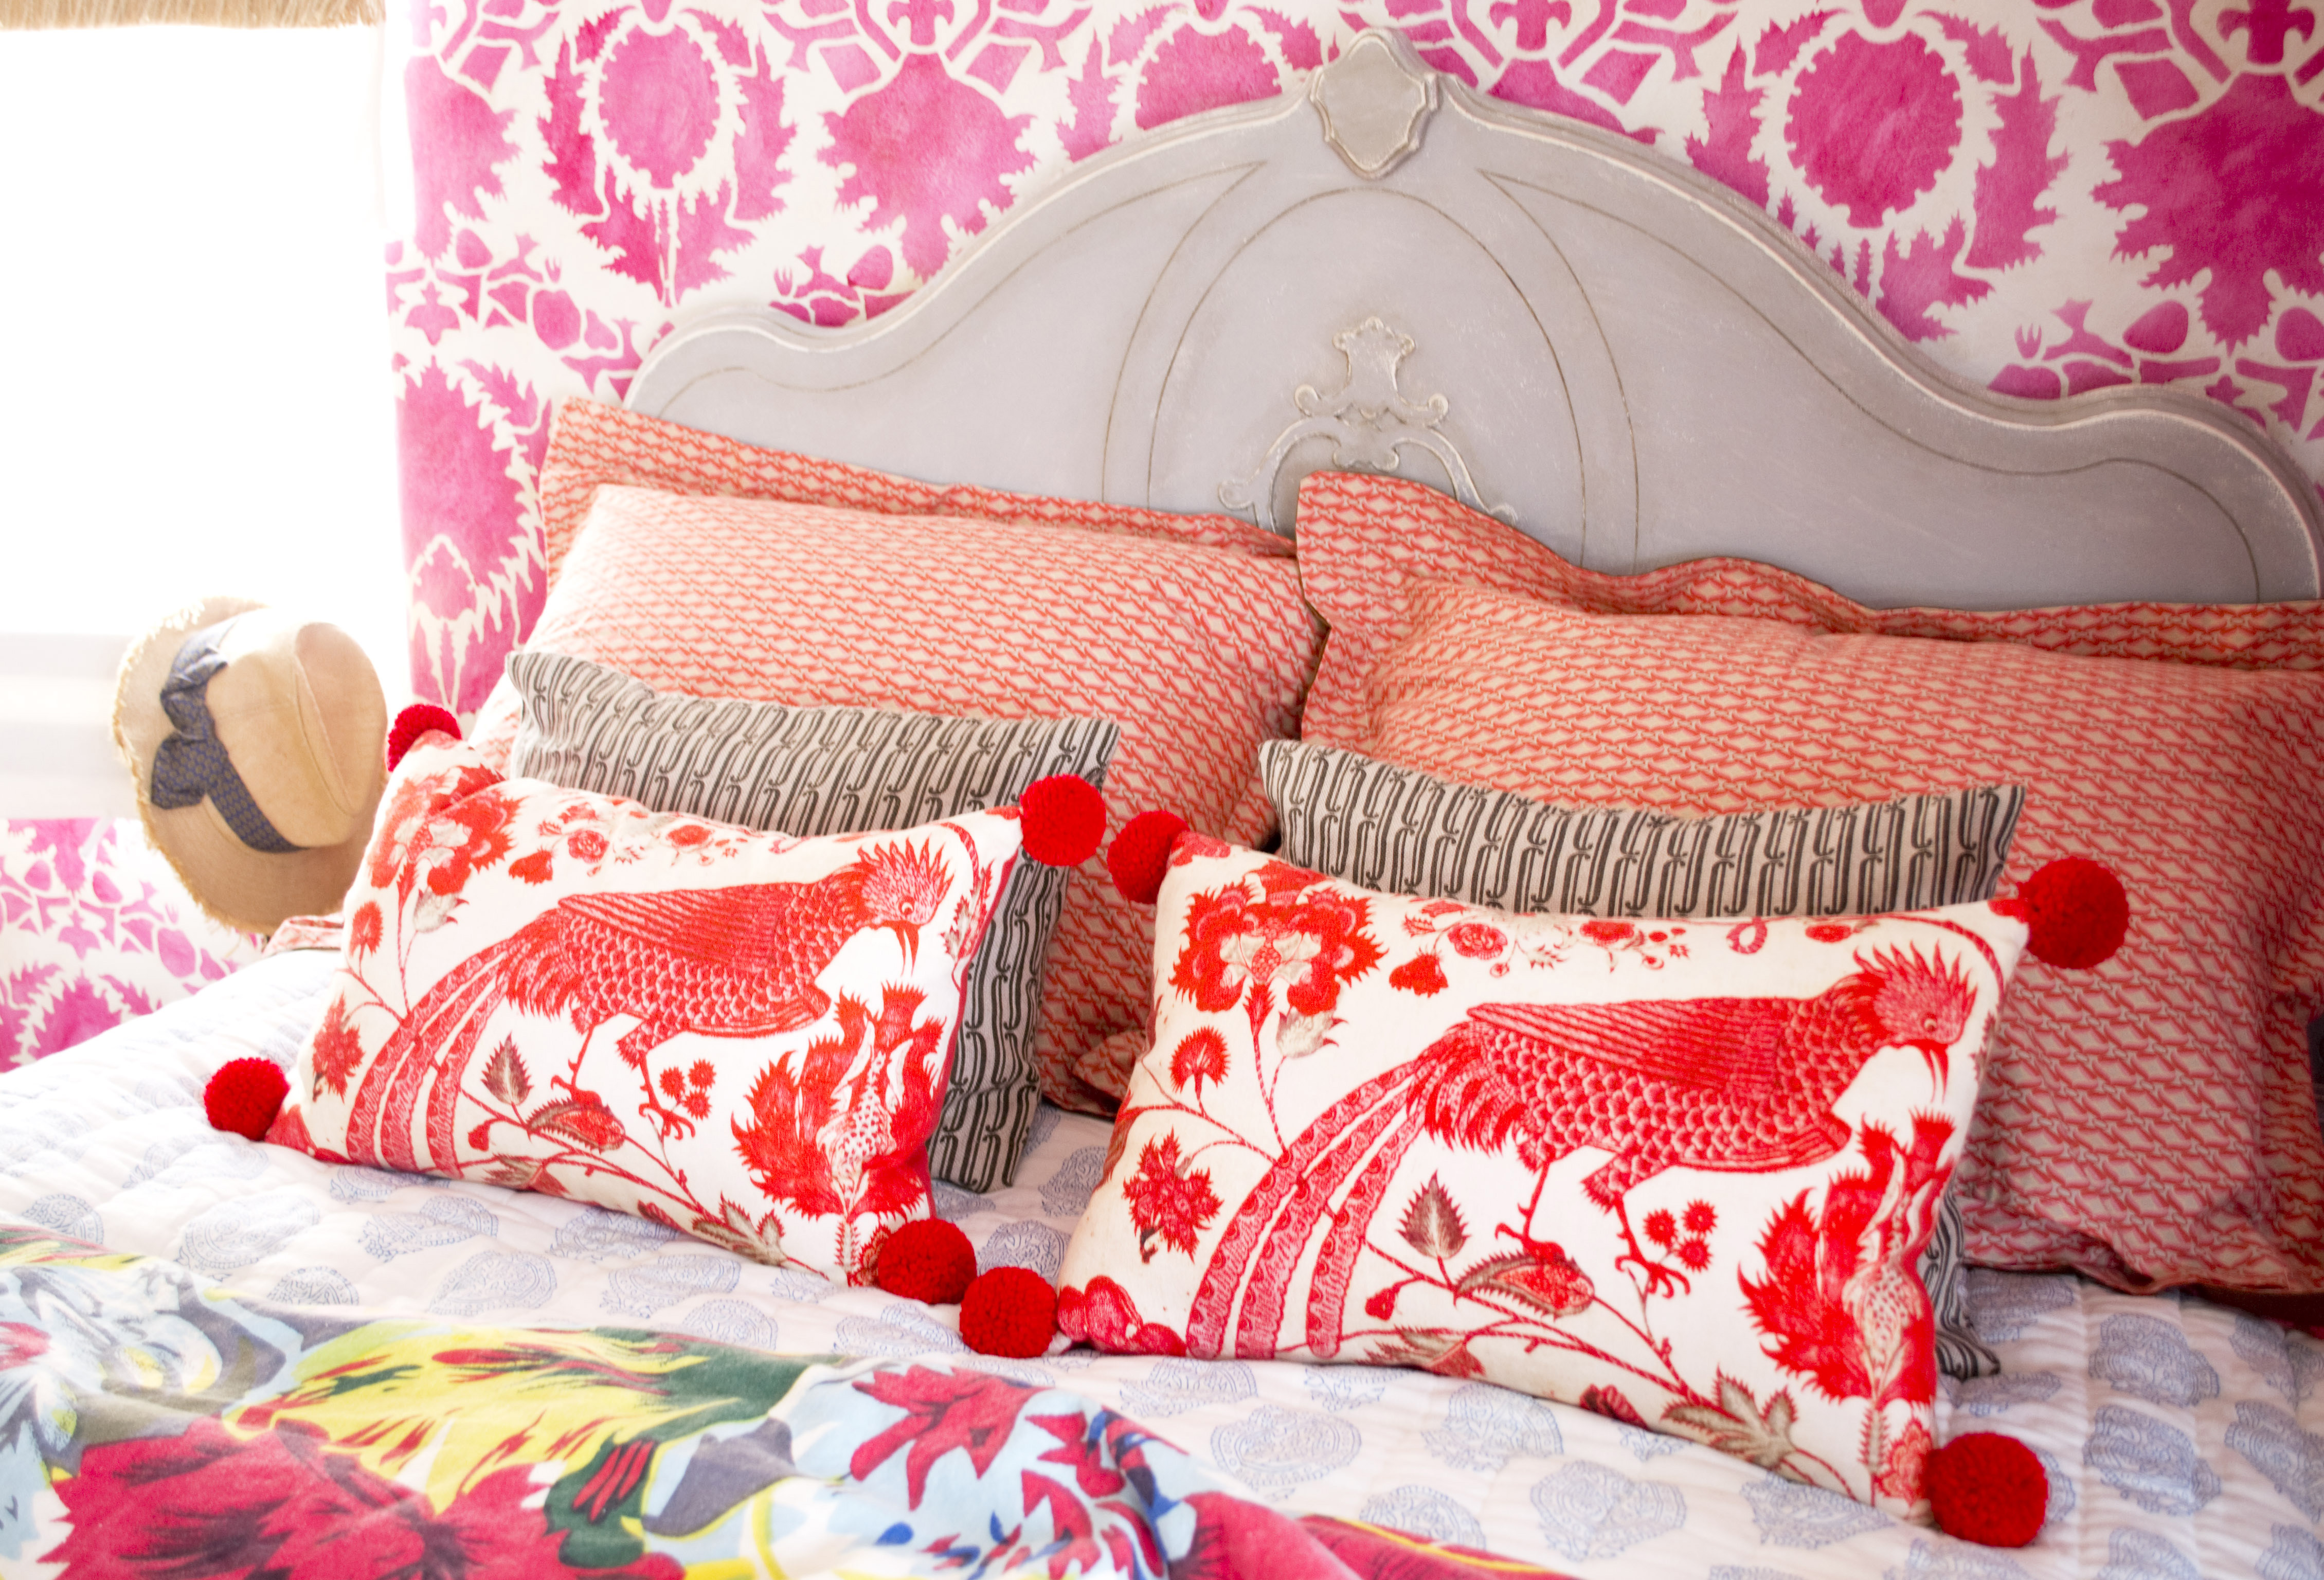 Red Pom Pom Pillow on Bed